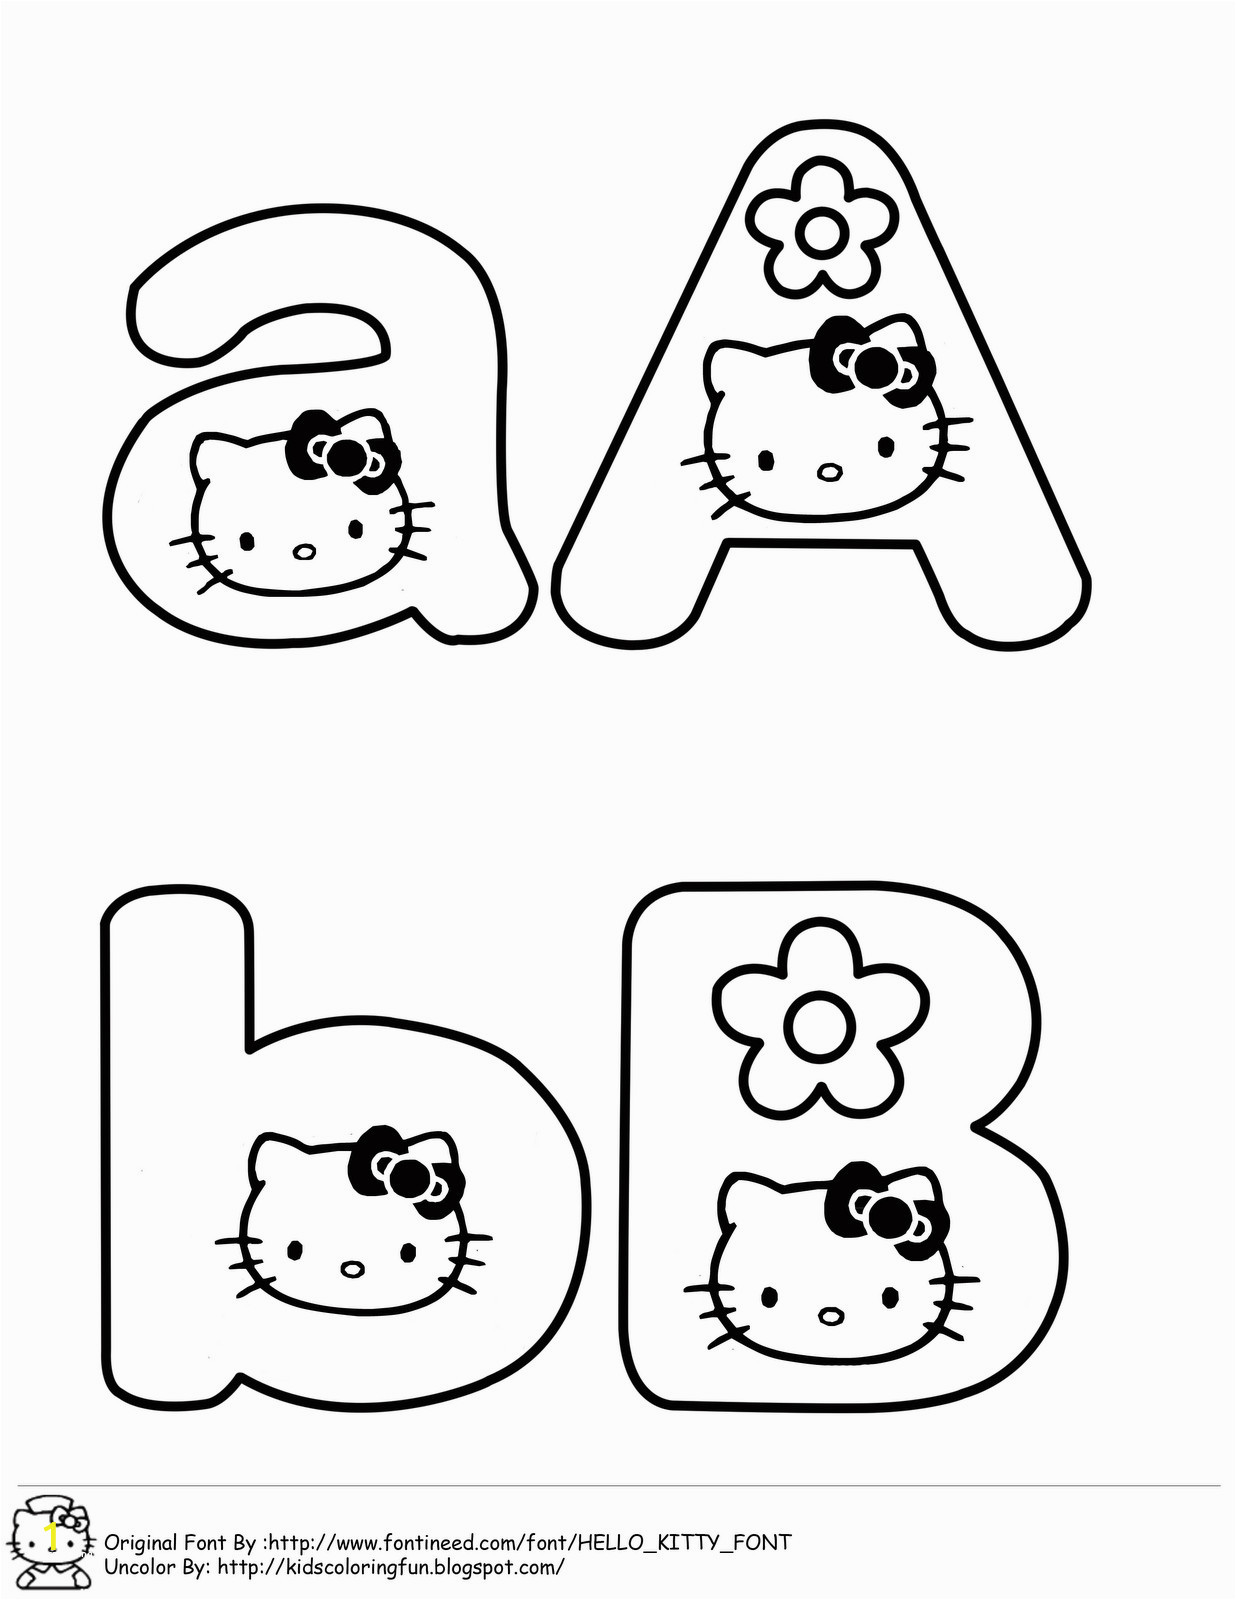 hello kitty mermaid coloring pages lovely learning abc with hello kitty learn to coloring of hello kitty mermaid coloring pages